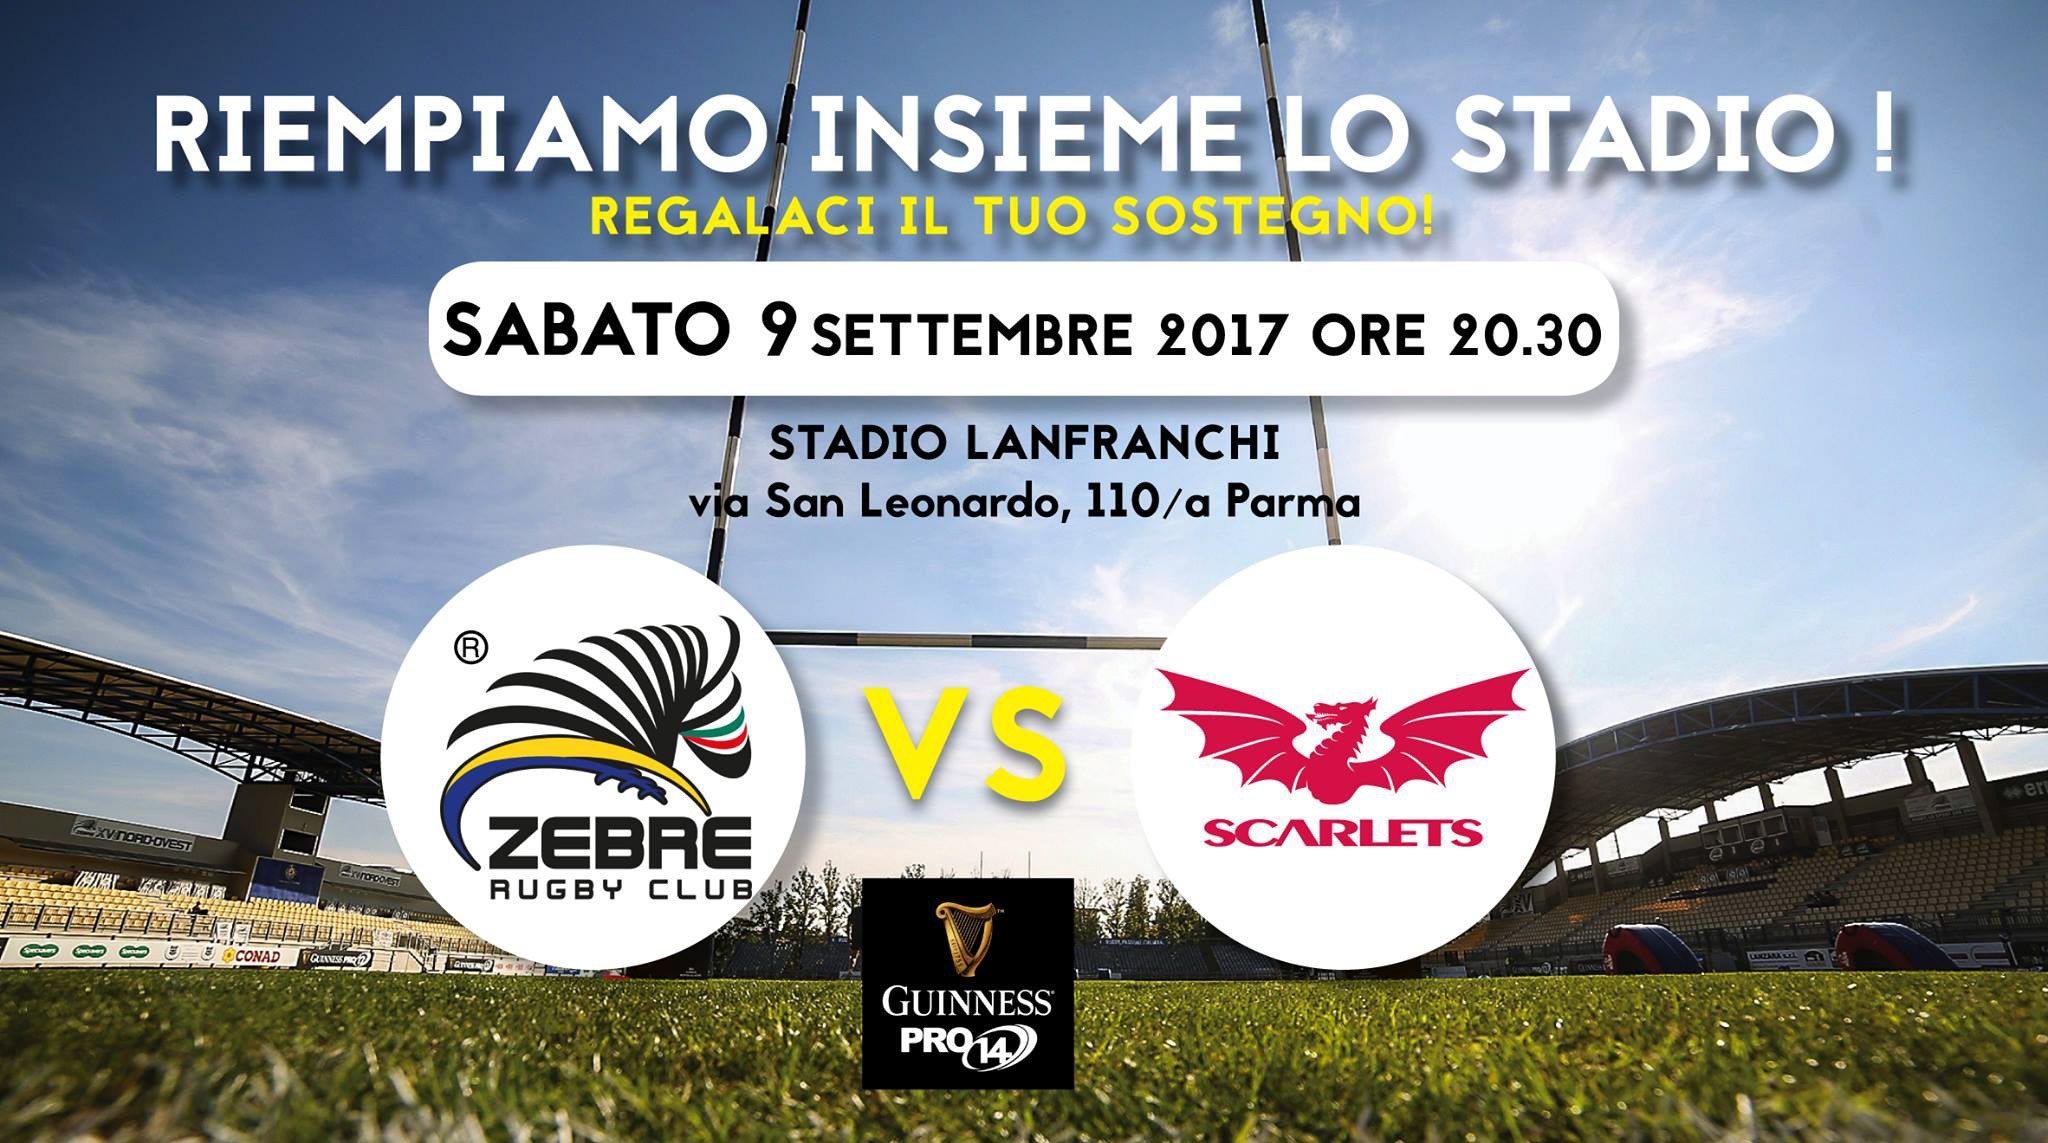 Saturday 9 September sees Zebre play their opening home game in the new Guinness Pro14 tournament